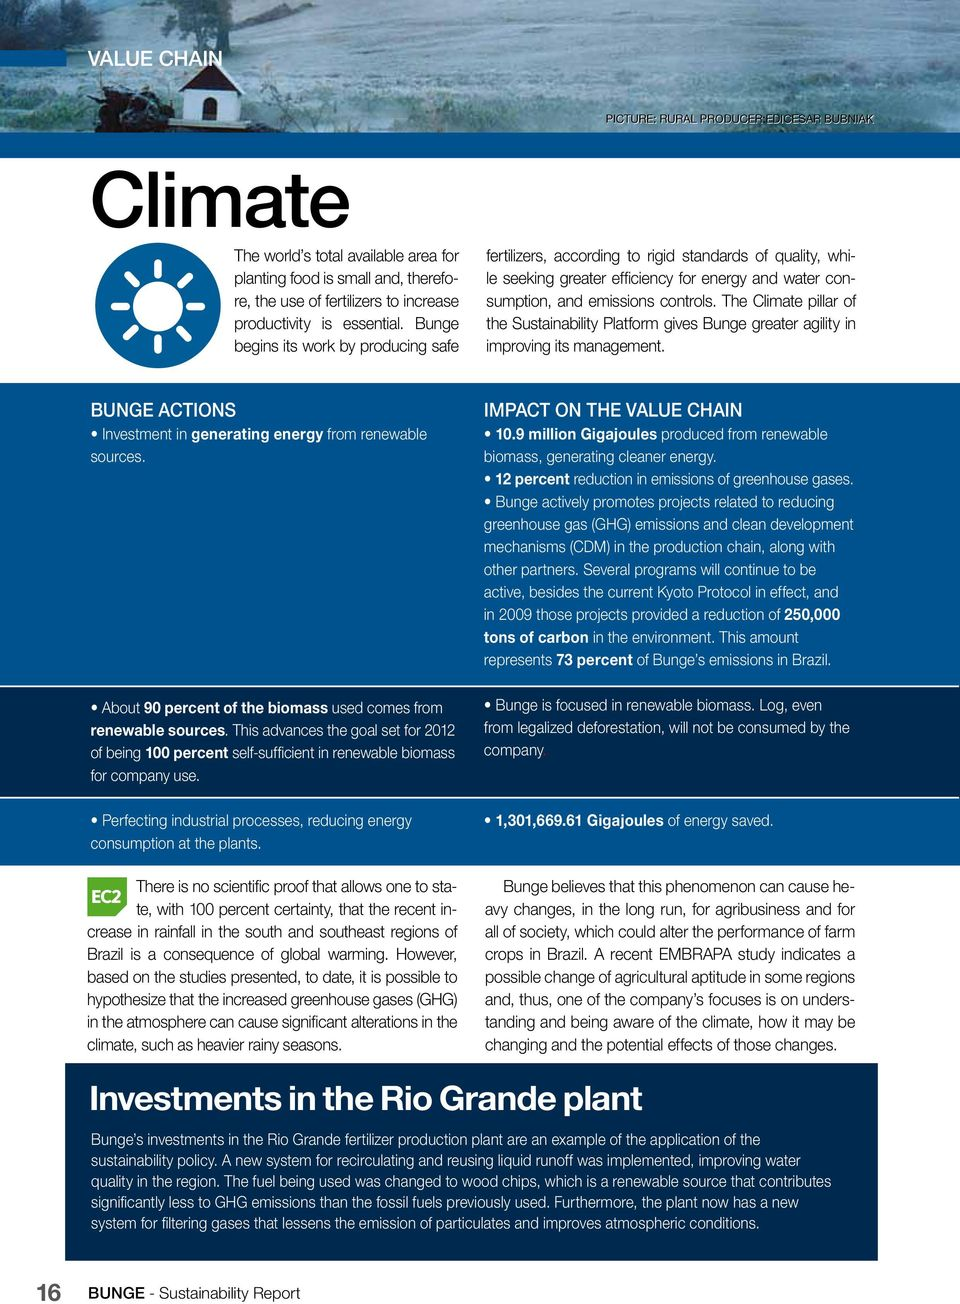 The Climate pillar of the Sustainability Platform gives Bunge greater agility in improving its management. BUNGE ACTIONS Investment in generating energy from renewable sources.